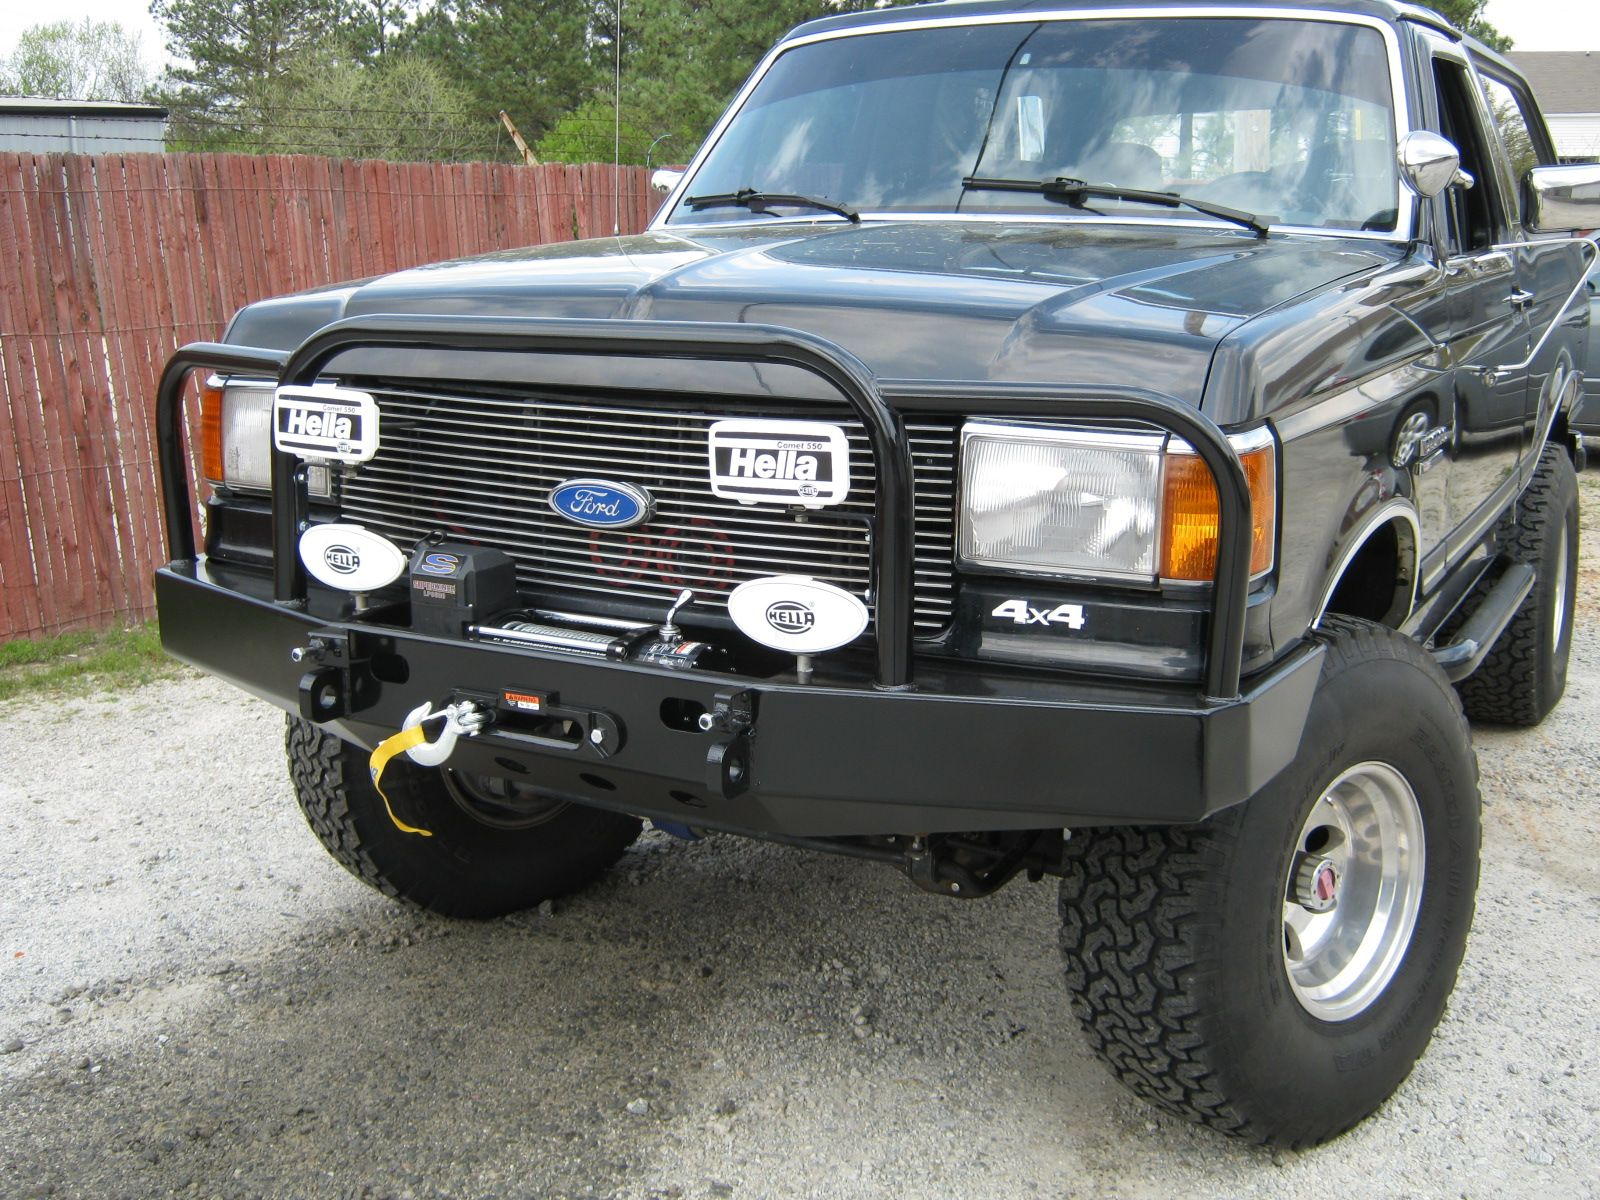 Ford Bronco 78 96 Winch Style Bumper With Shackle Mounts And A Hoop Style Grill Guard With Light Guards Ford Fordbronco Bumpers Ford Bronco Custom Trucks